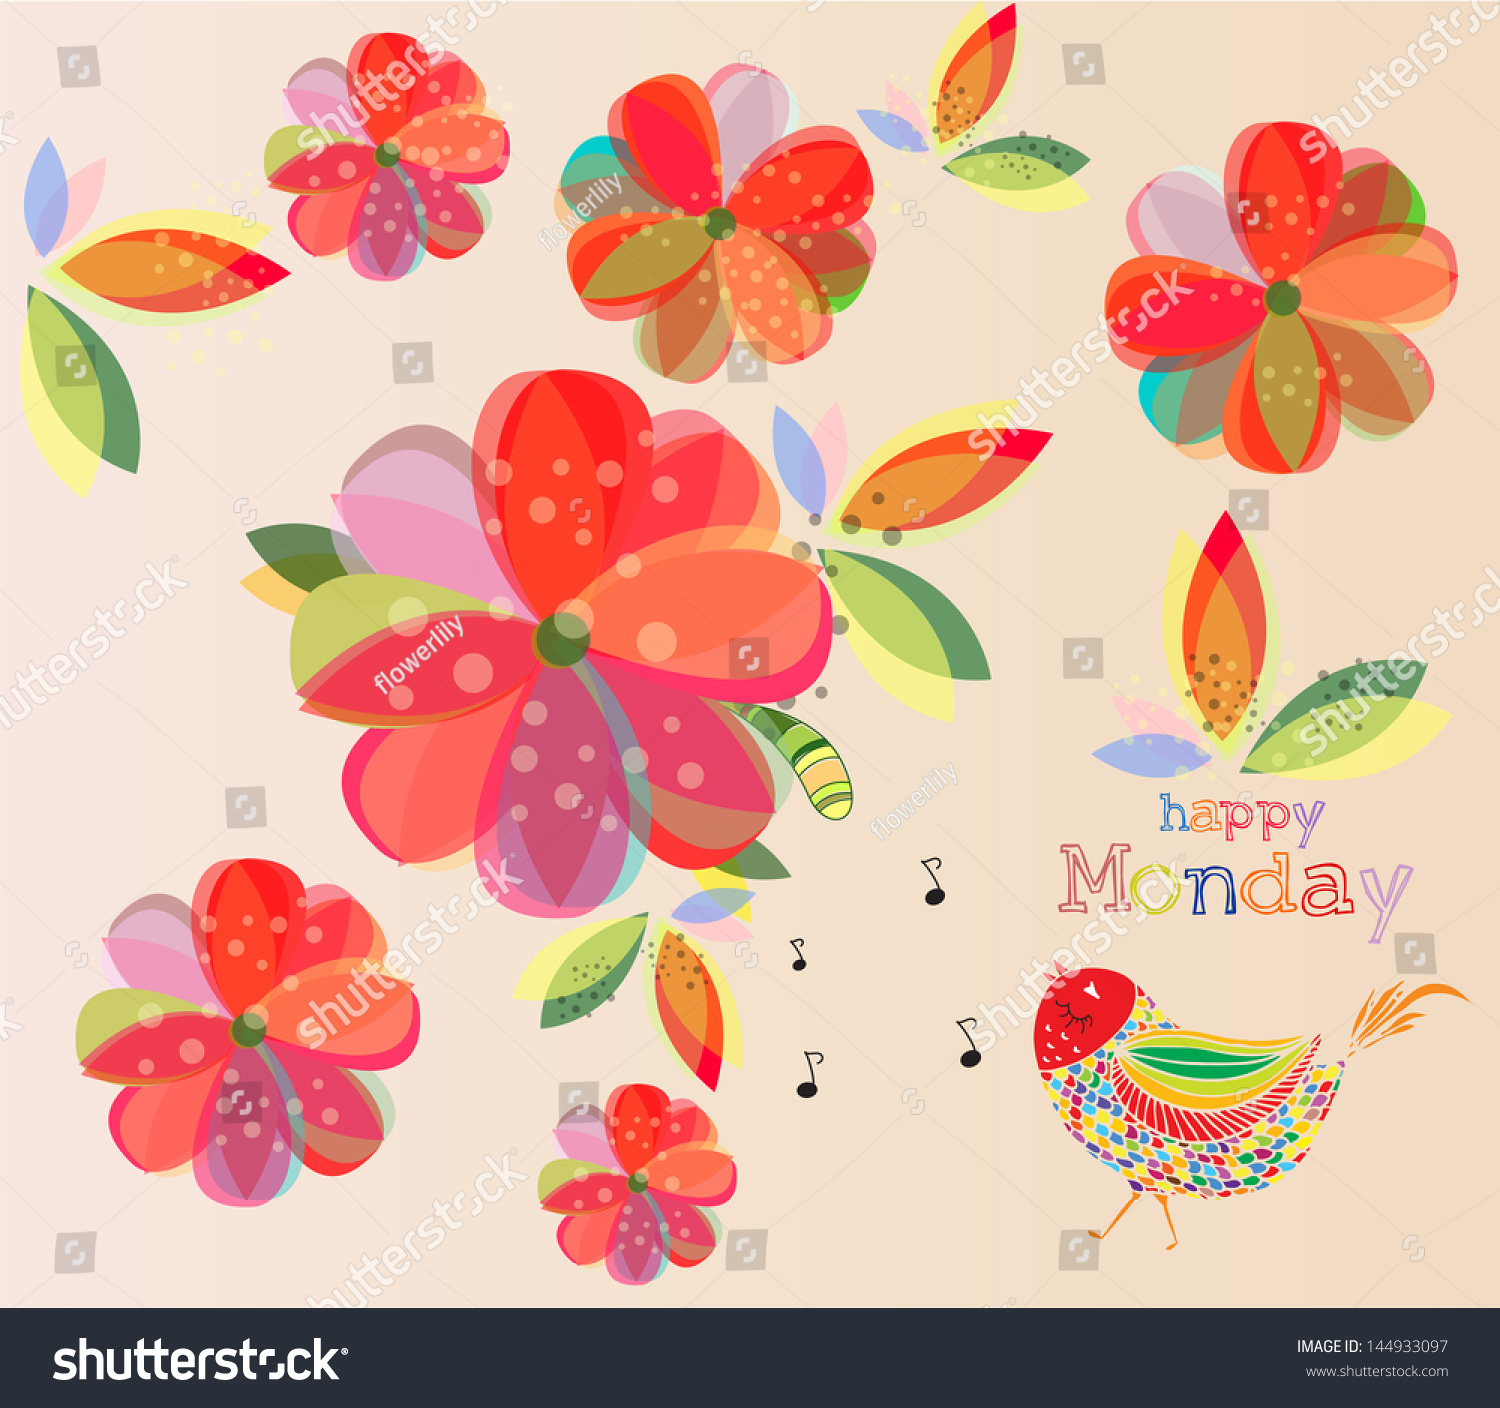 Happy Monday Lovely Wallpaper Colorful Floral 144933097